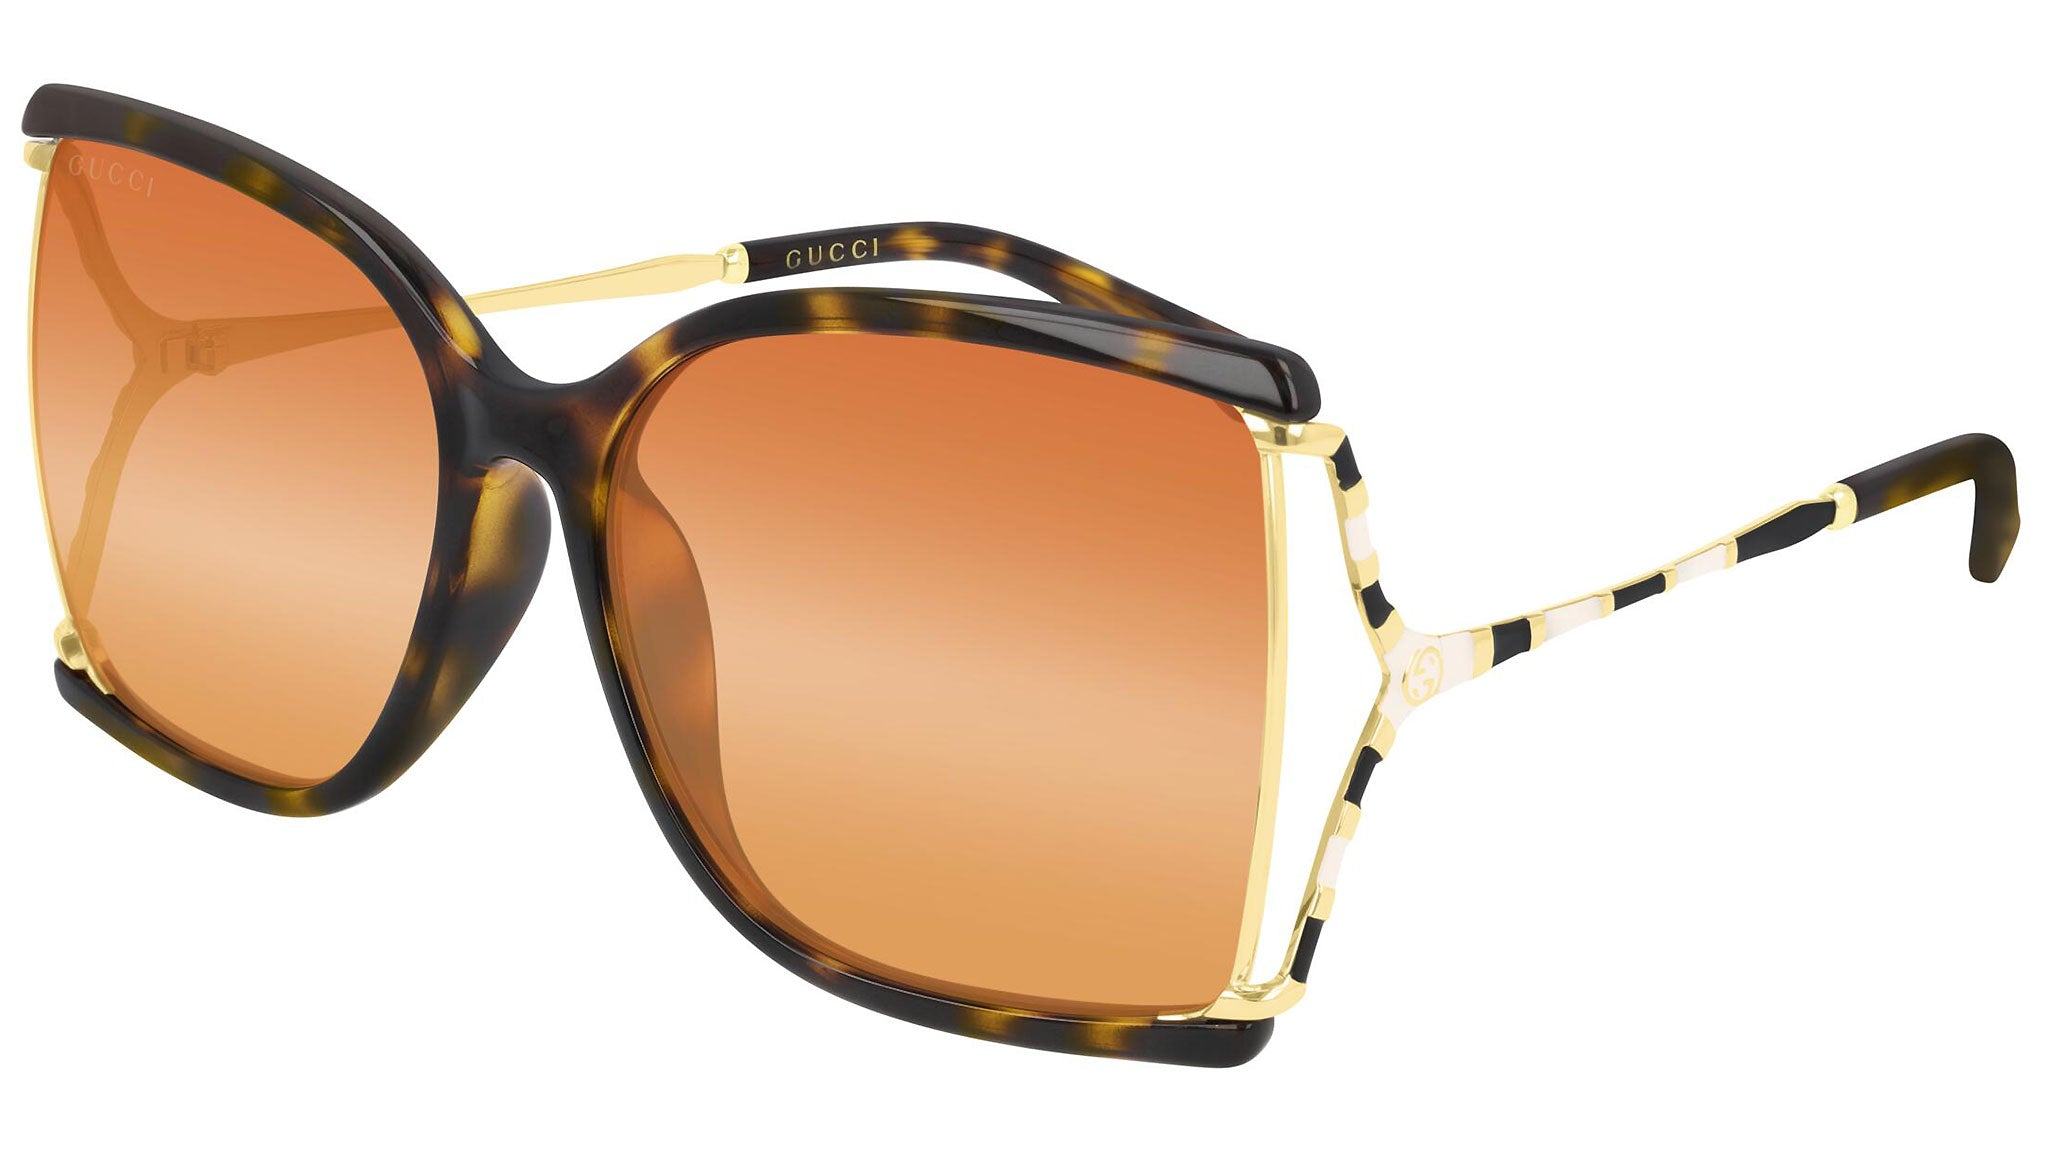 GG0592SK gold havana and triple orange/yellow